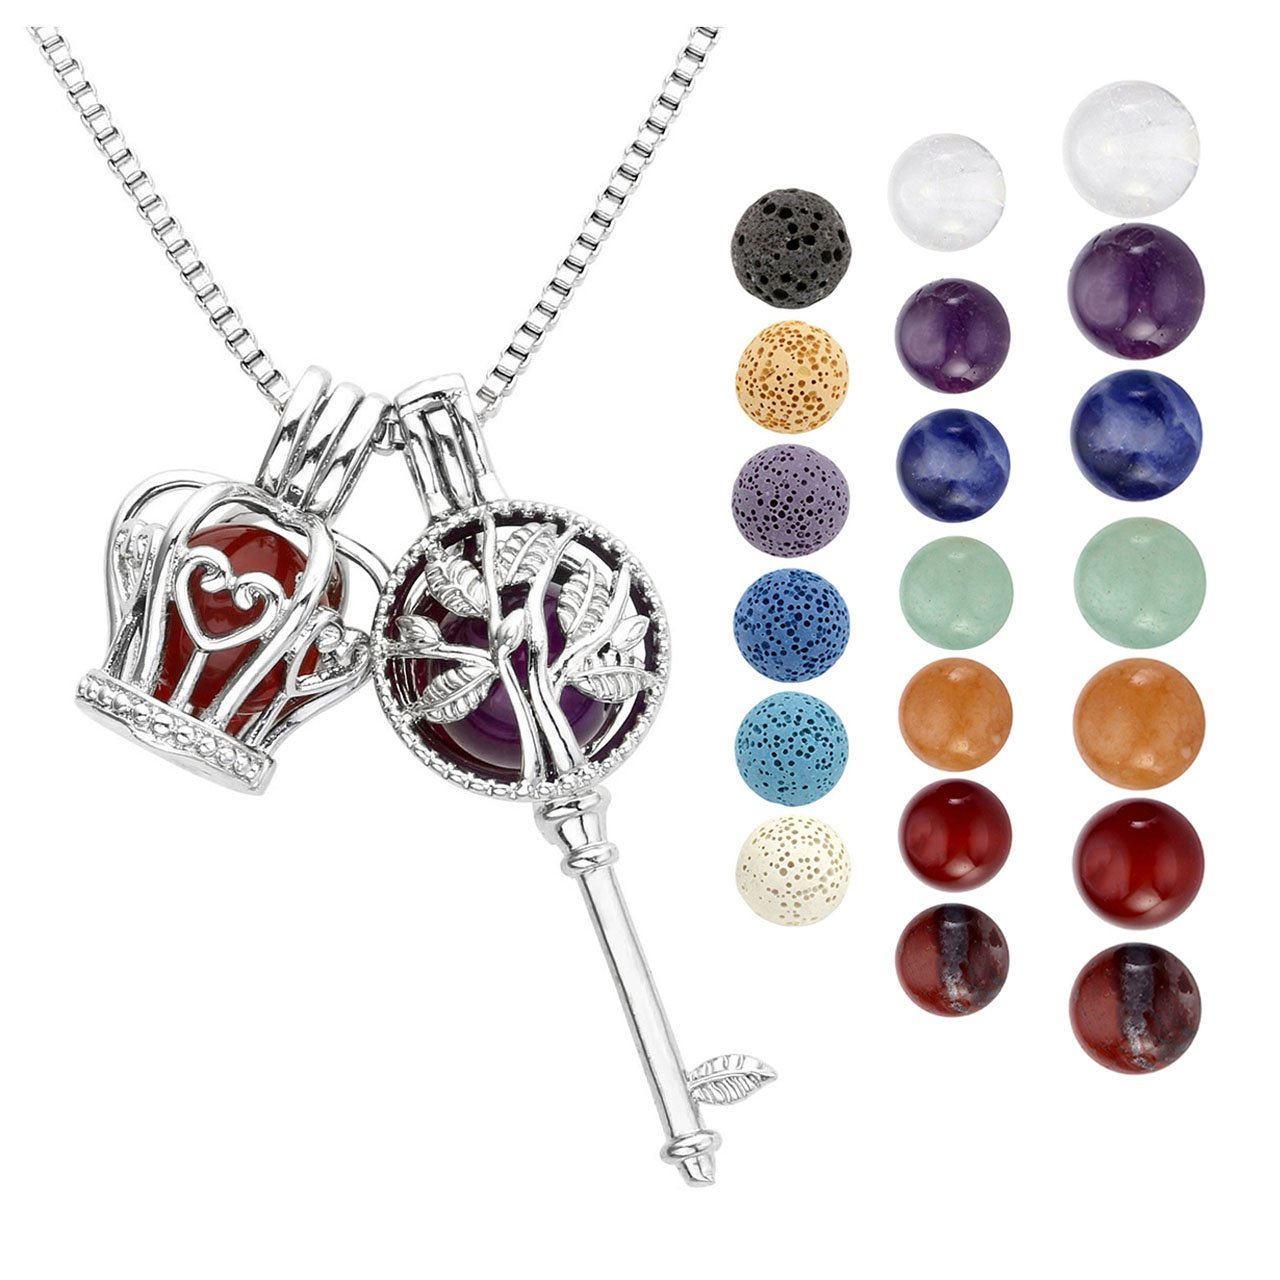 Top Plaza Fashion Aromatherapy Essential Oil Diffuser Necklace Healing Crystal Double Locket Pendant W/6 Dyed Lava Rock Stone + 7 Chakra Gemstones Beads(Tree Of Life Key+Crown)